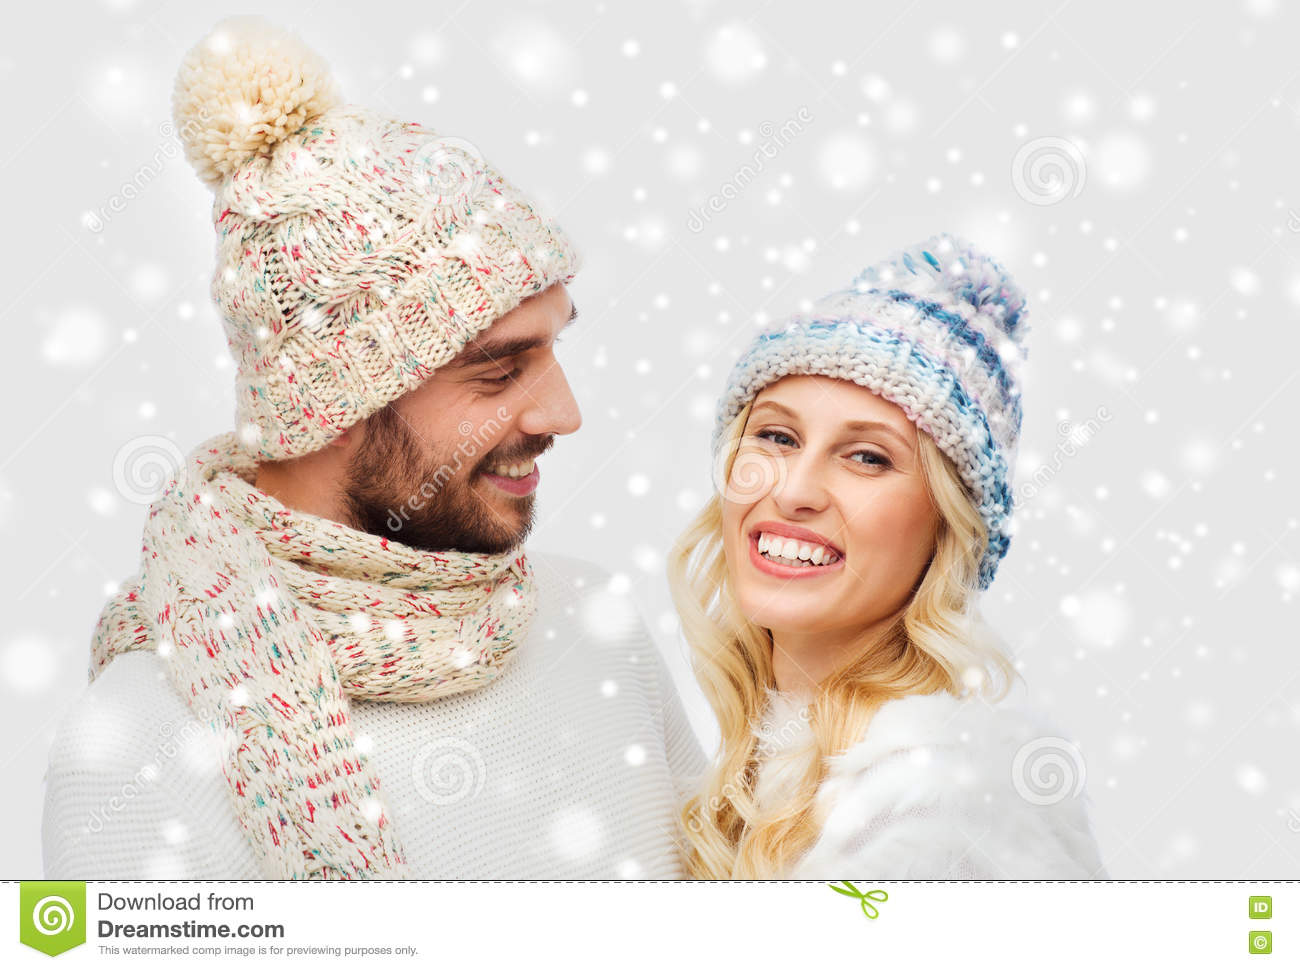 c3f202e6277 Smiling Couple In Winter Clothes Hugging Over Snow Stock Photo ...